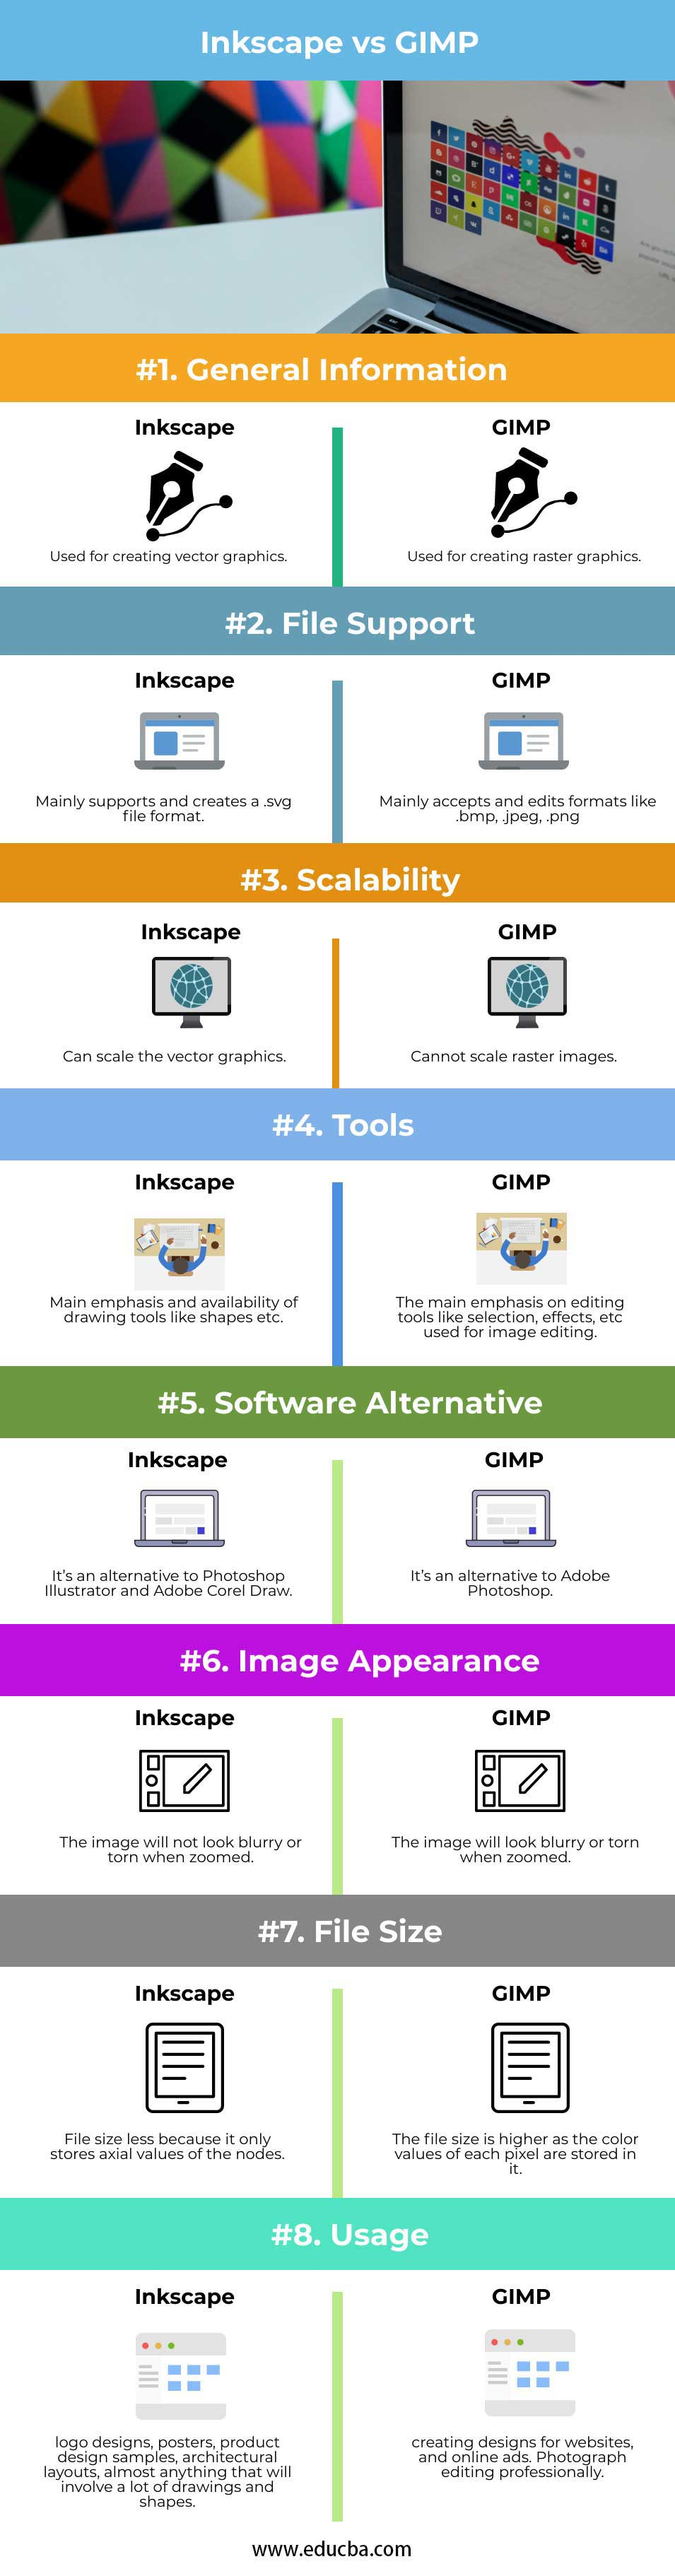 Inkscape vs GIMP info